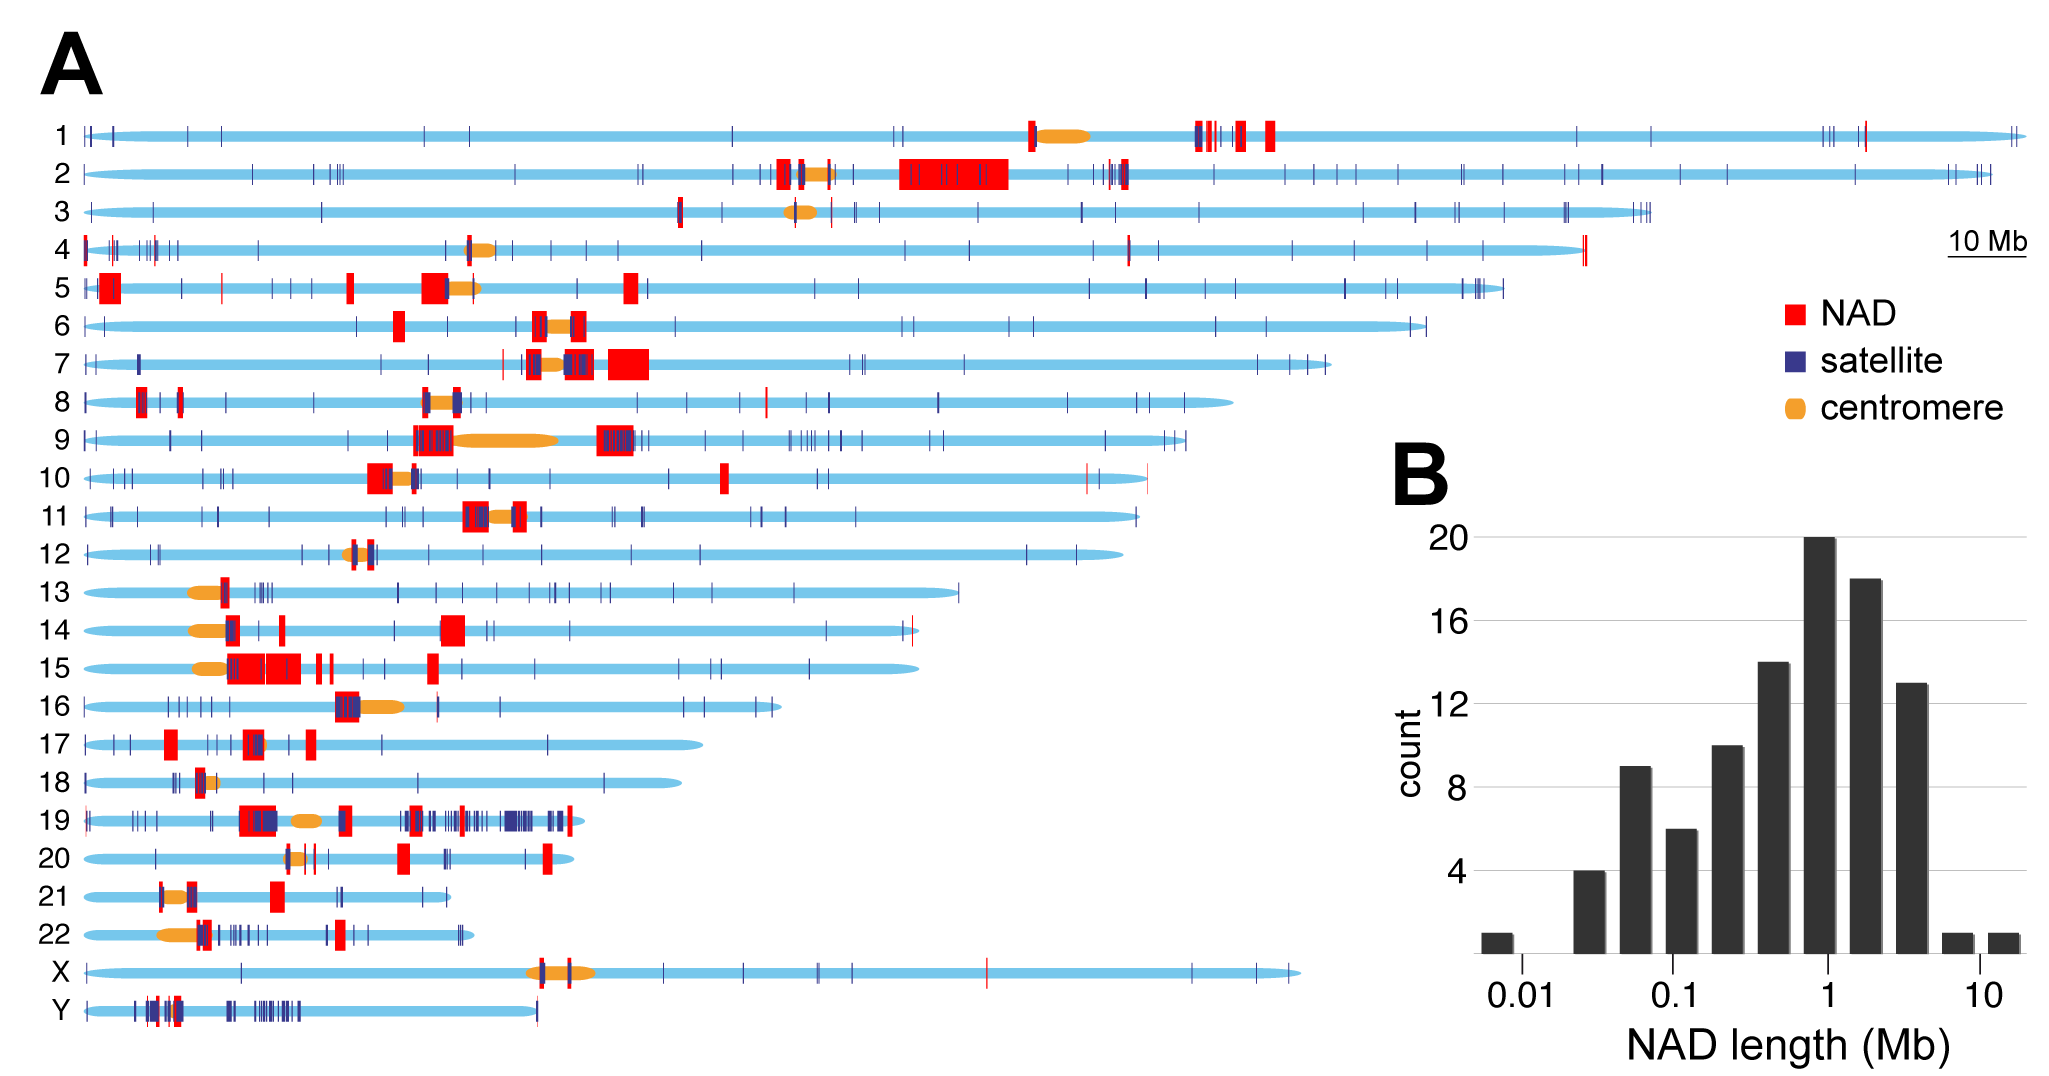 Genomic and size distribution of NADs.